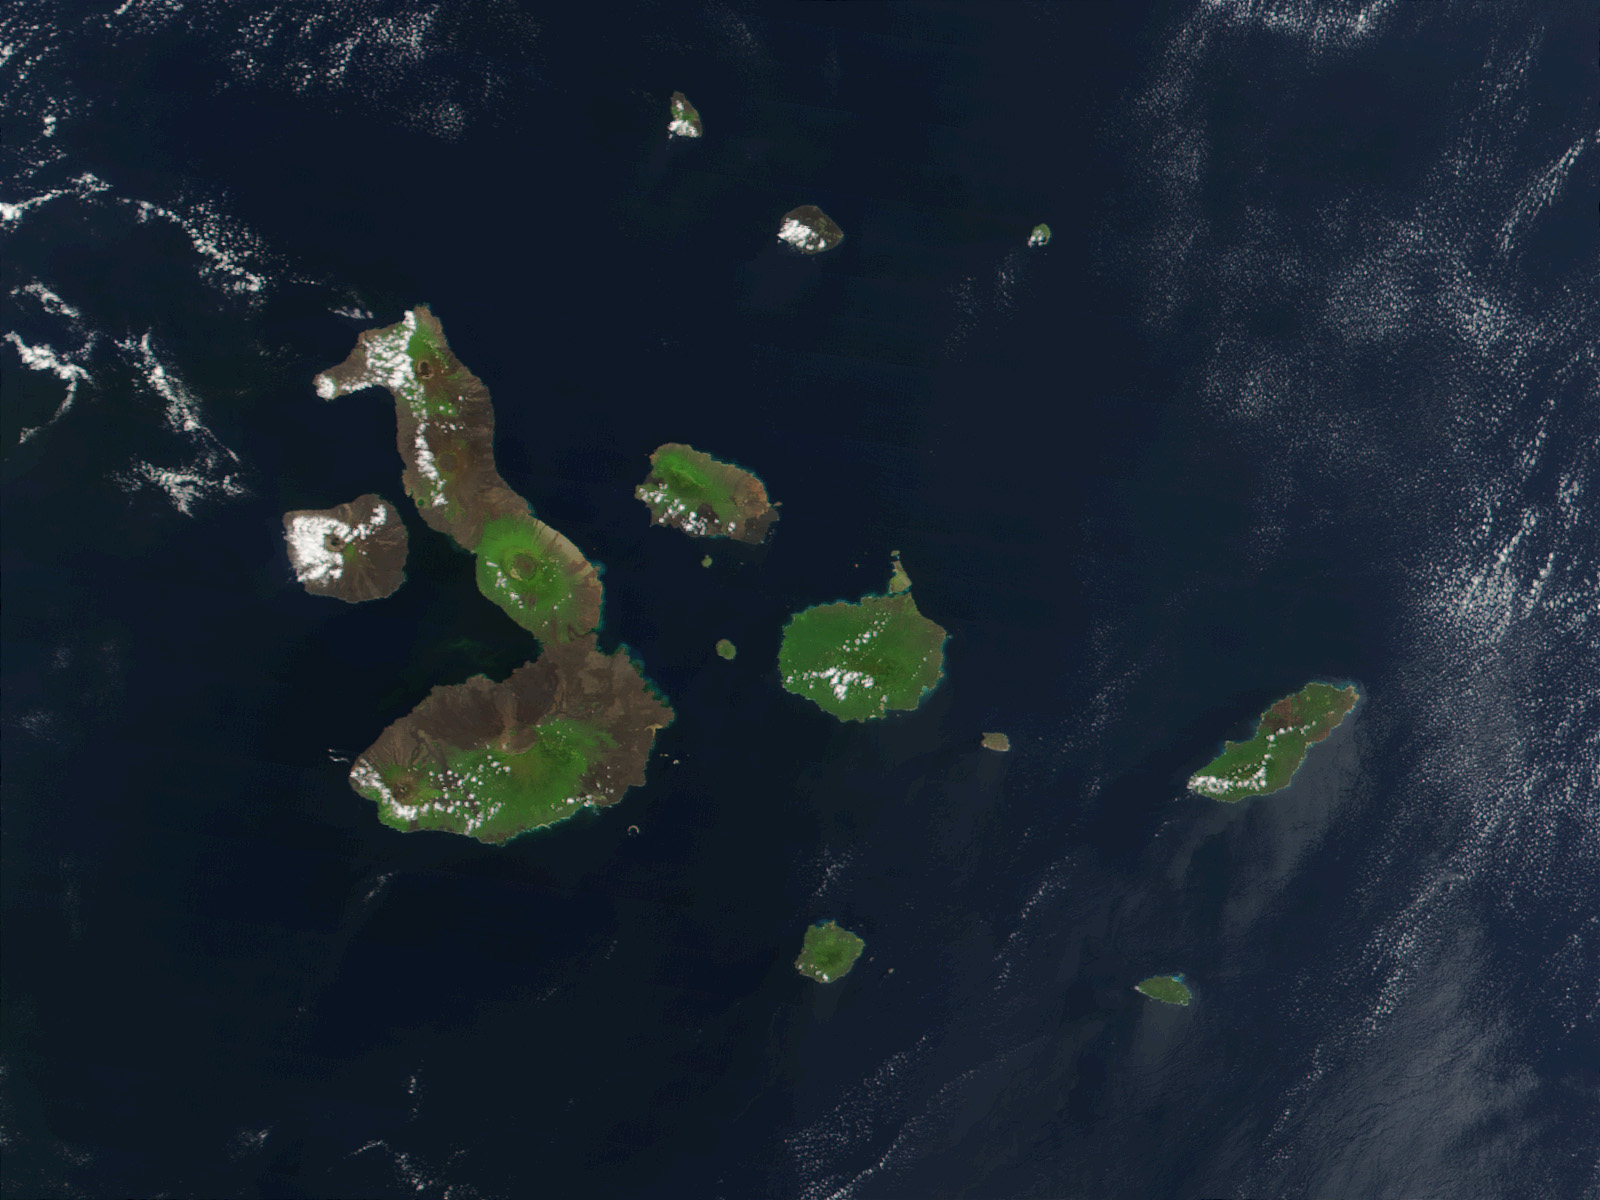 http://upload.wikimedia.org/wikipedia/commons/b/b1/Galapagos-satellite-2002.jpg